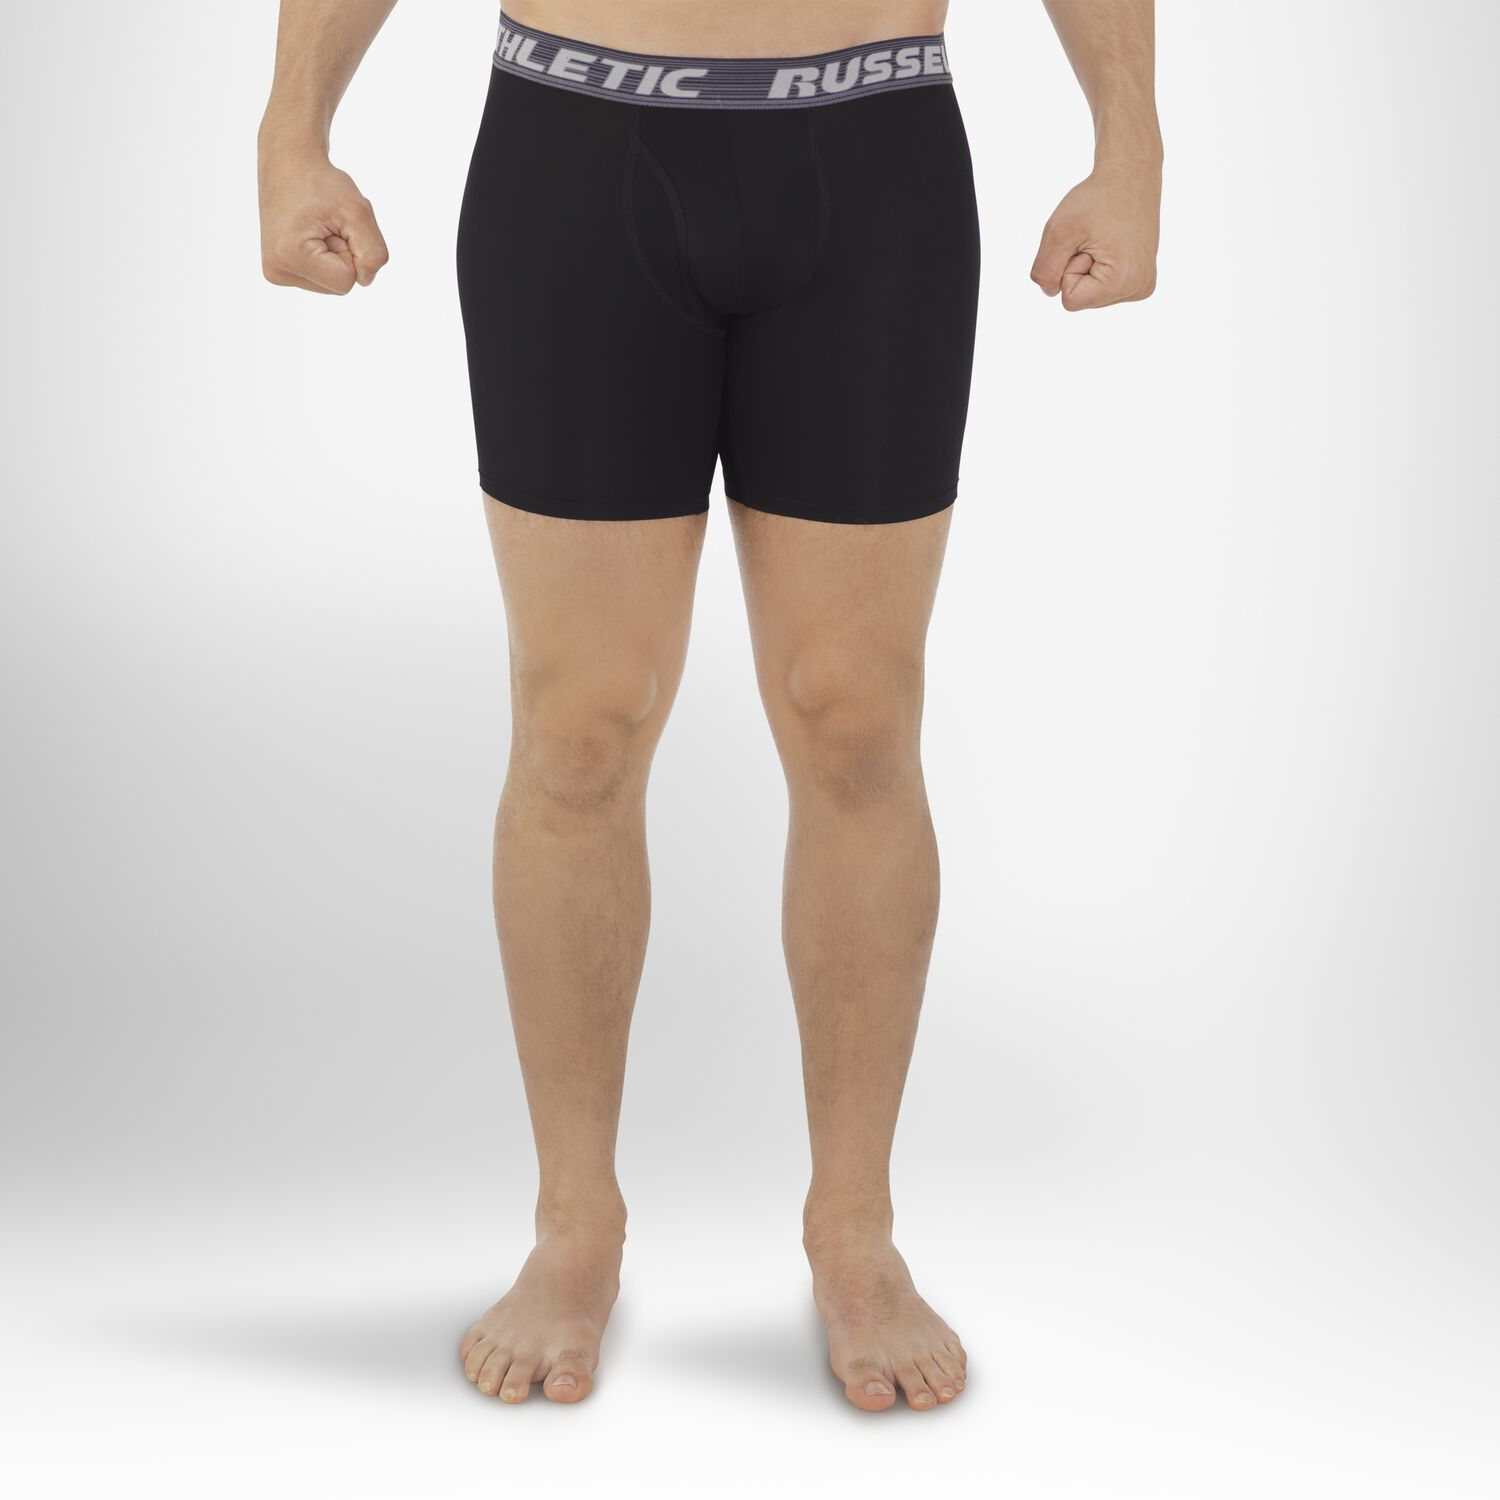 f1c3a067385e Men's Performance Underwear - Russell US | Russell Athletic